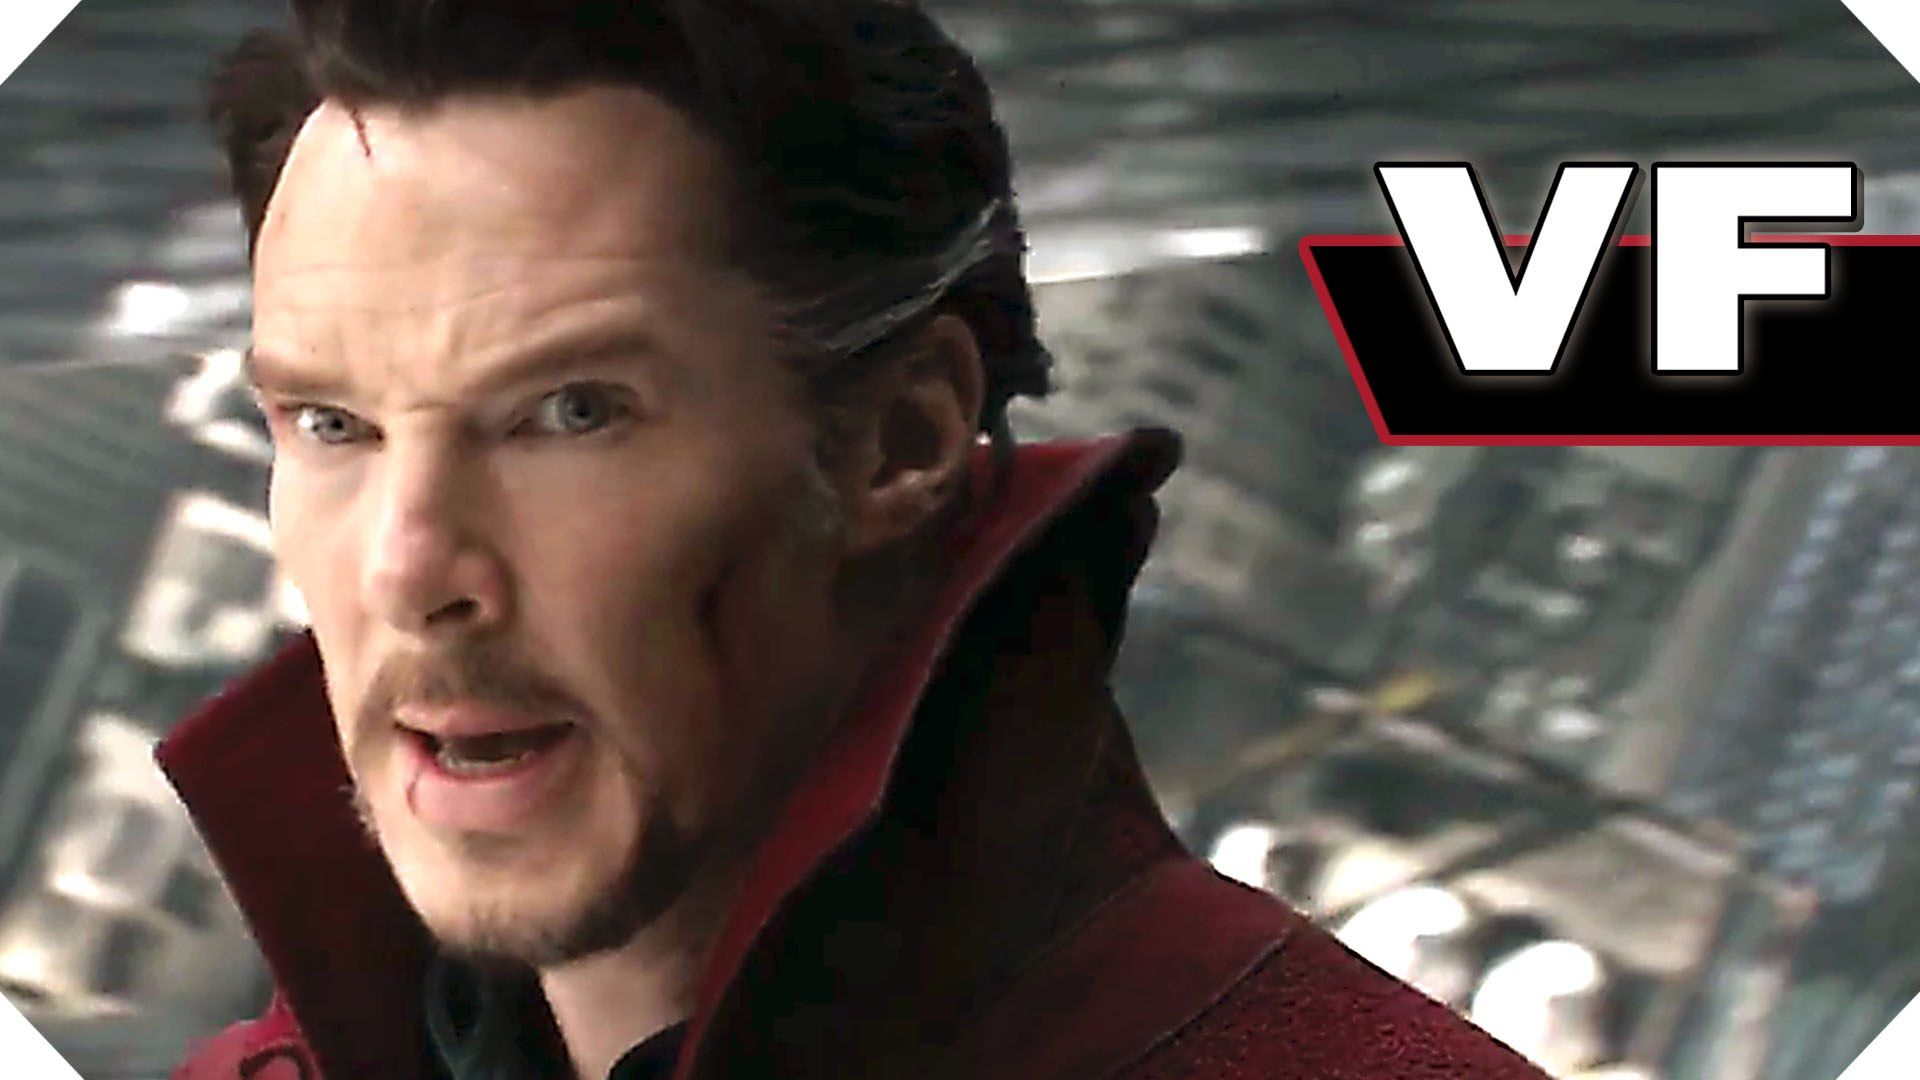 Https Www Youtube Com Watchvhszx Zryegmfeatureshare Doctor Strange Official Trailer Two Starring Benedict Cumberbatch Coming To Cinemas On No